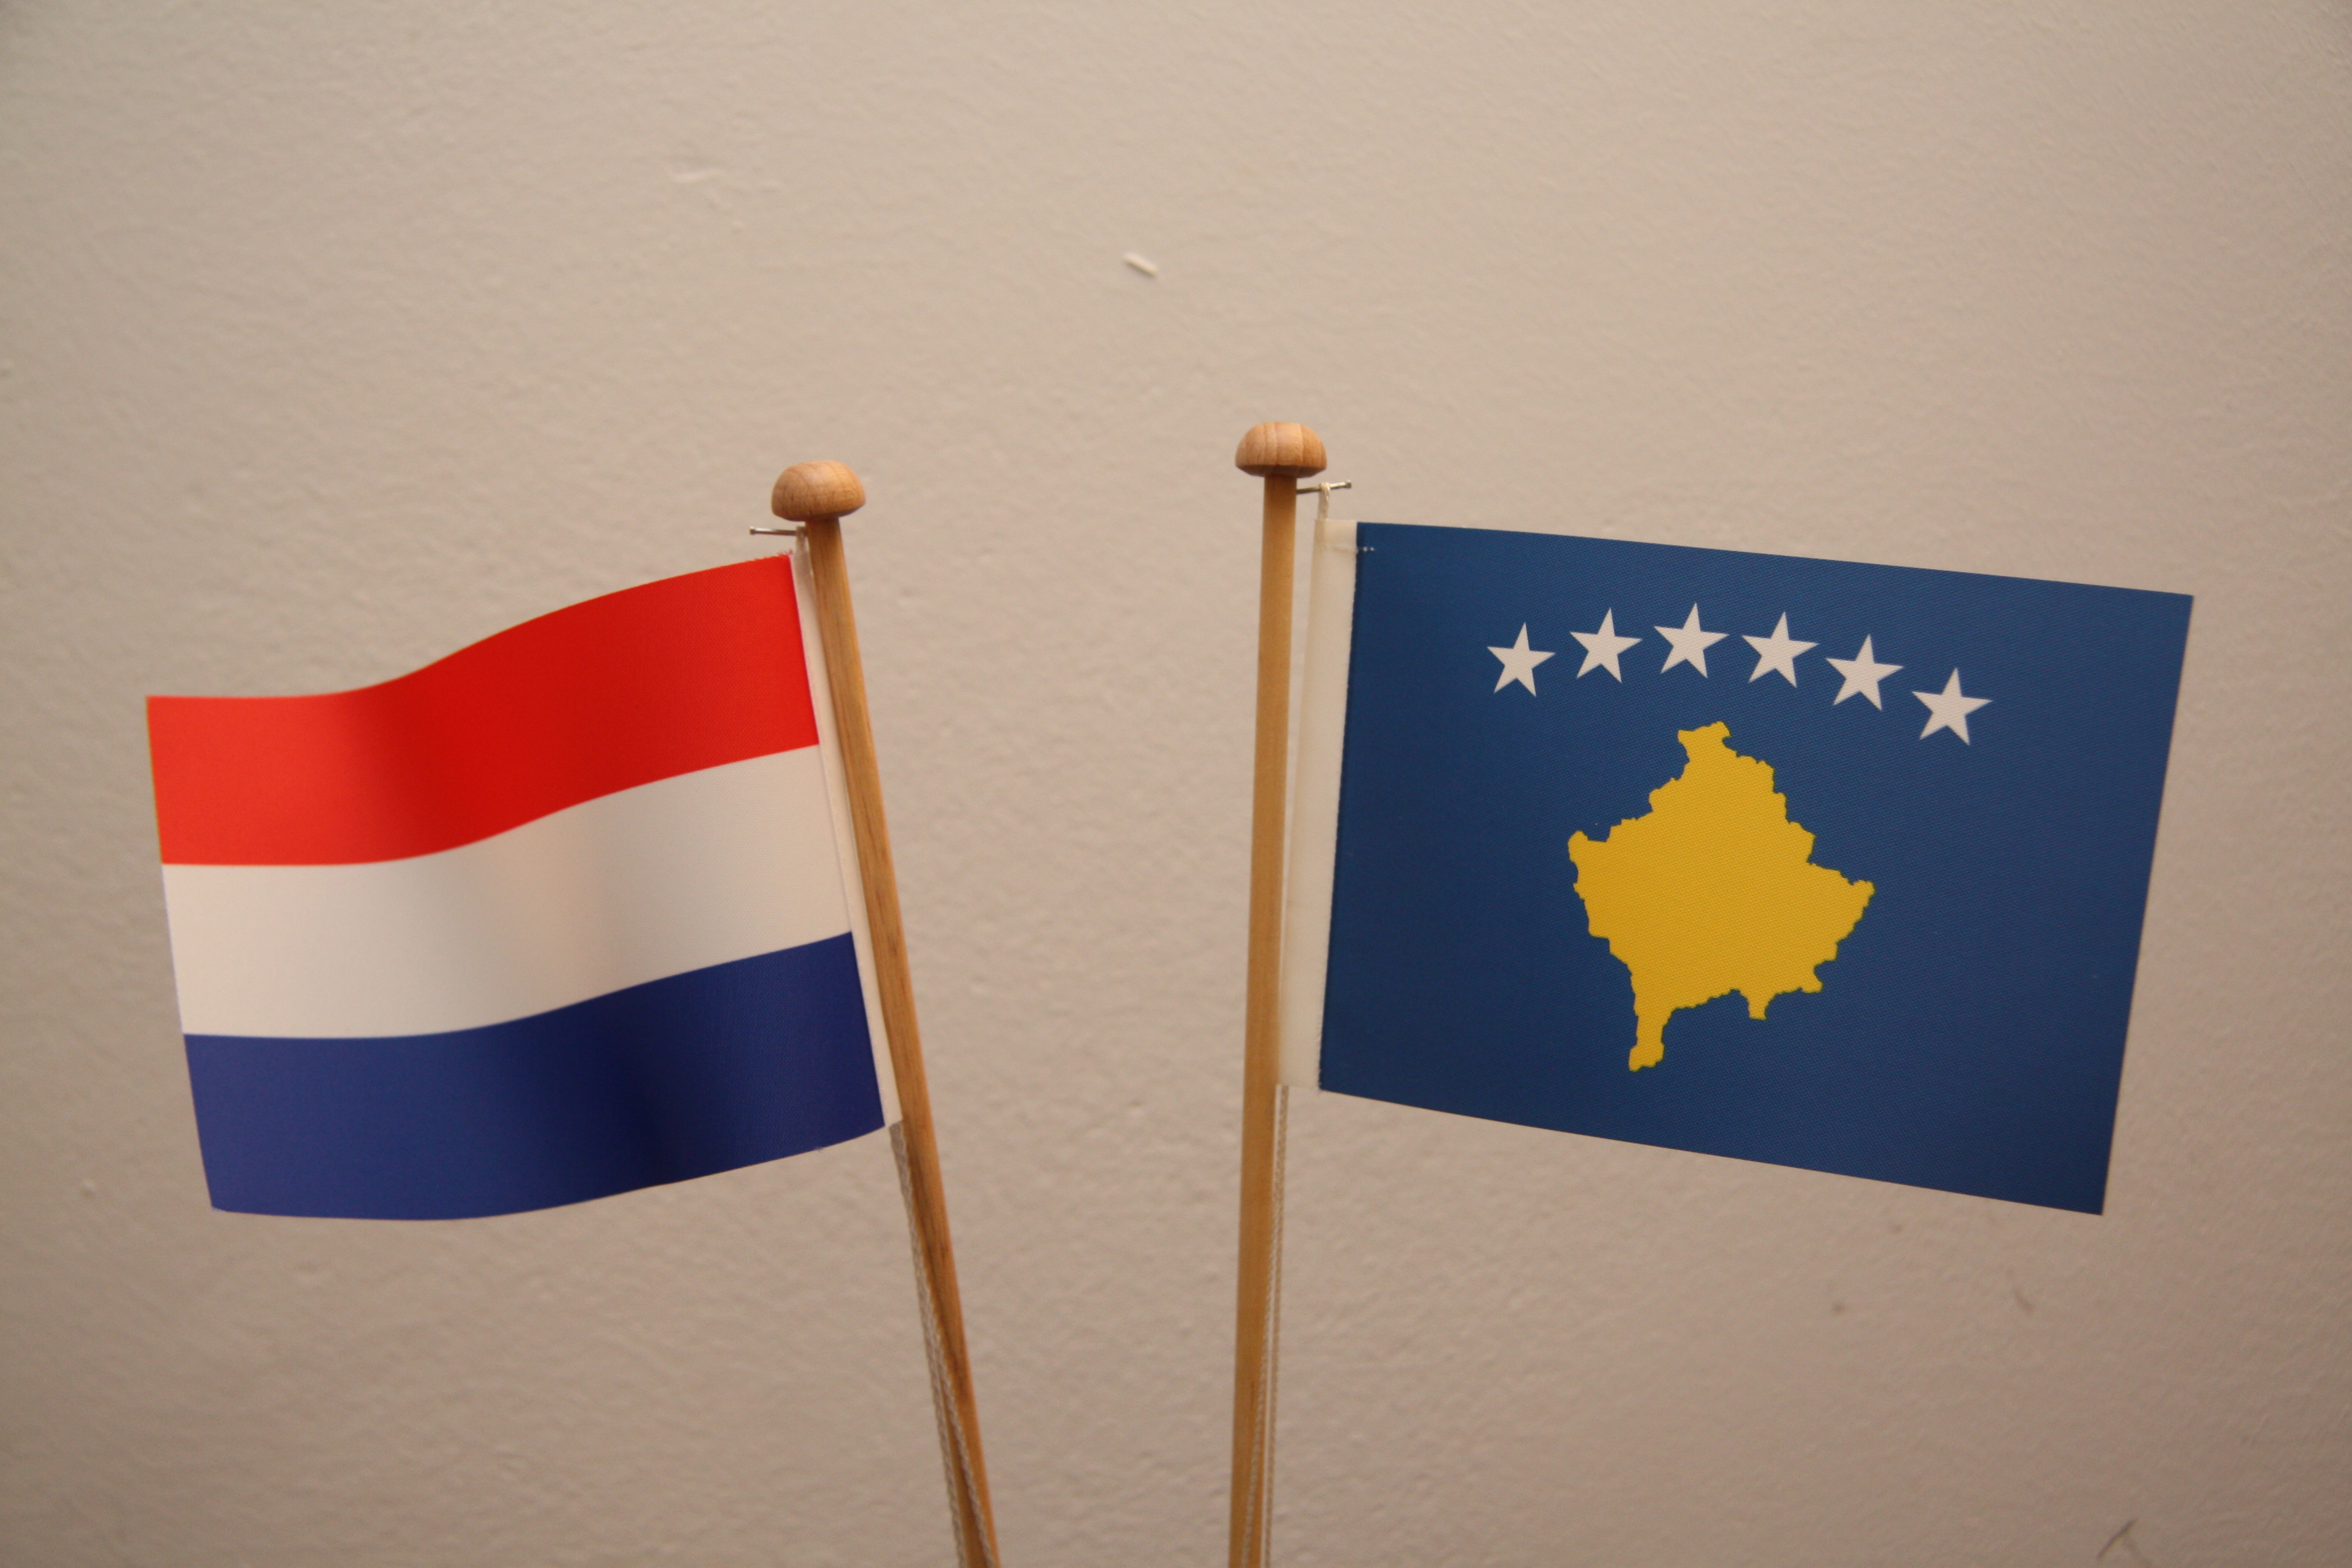 The flags of Kosovo and The Netherlands